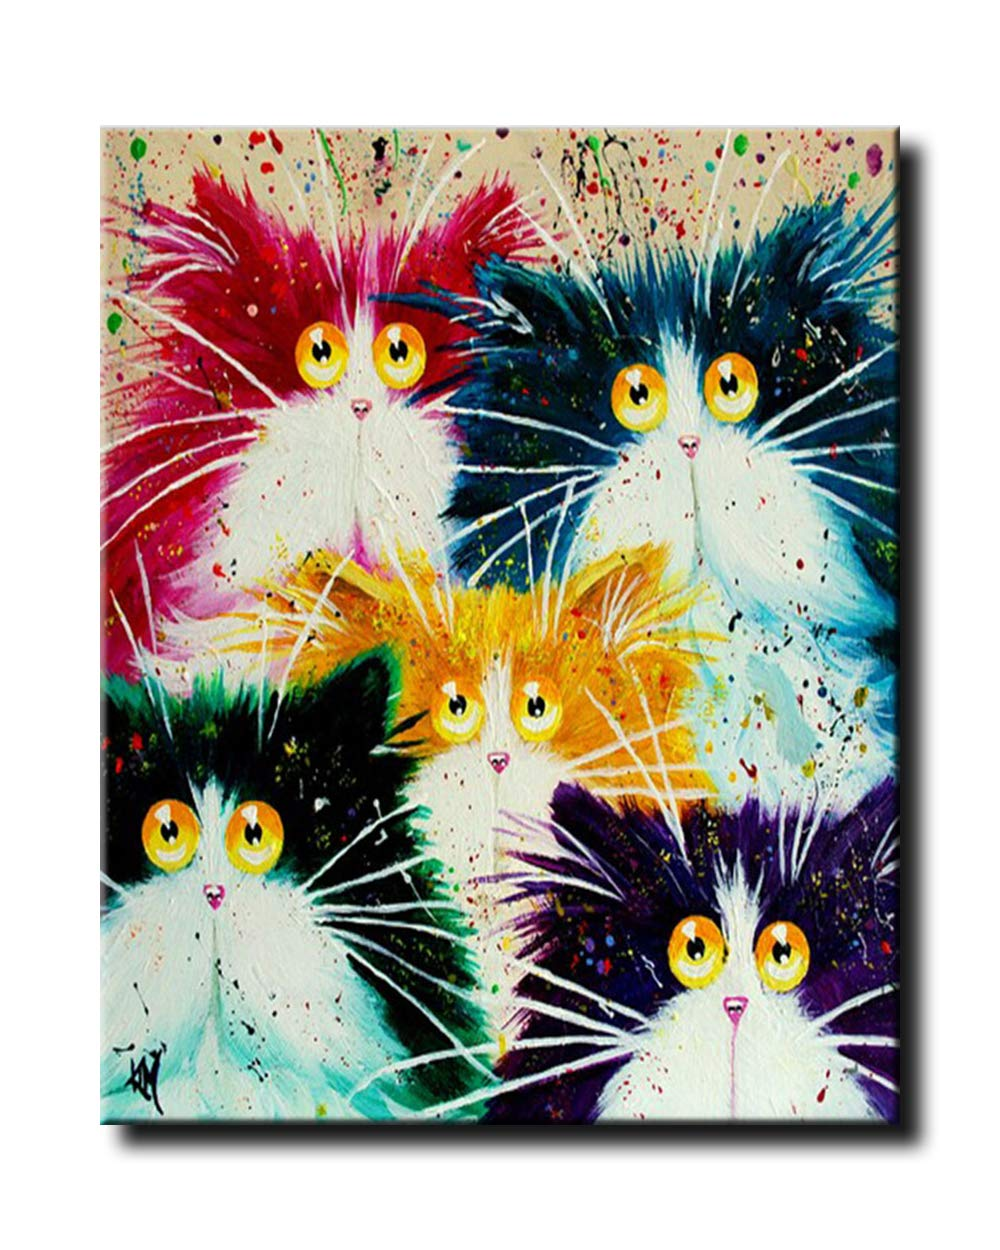 Beautiful DIY Artwork Painting Kit Easy ArtWorlds Painting by Number| Paint by Number Kits Abstract Kitten, Frameless Painting with a Twist Painting for All Ages.